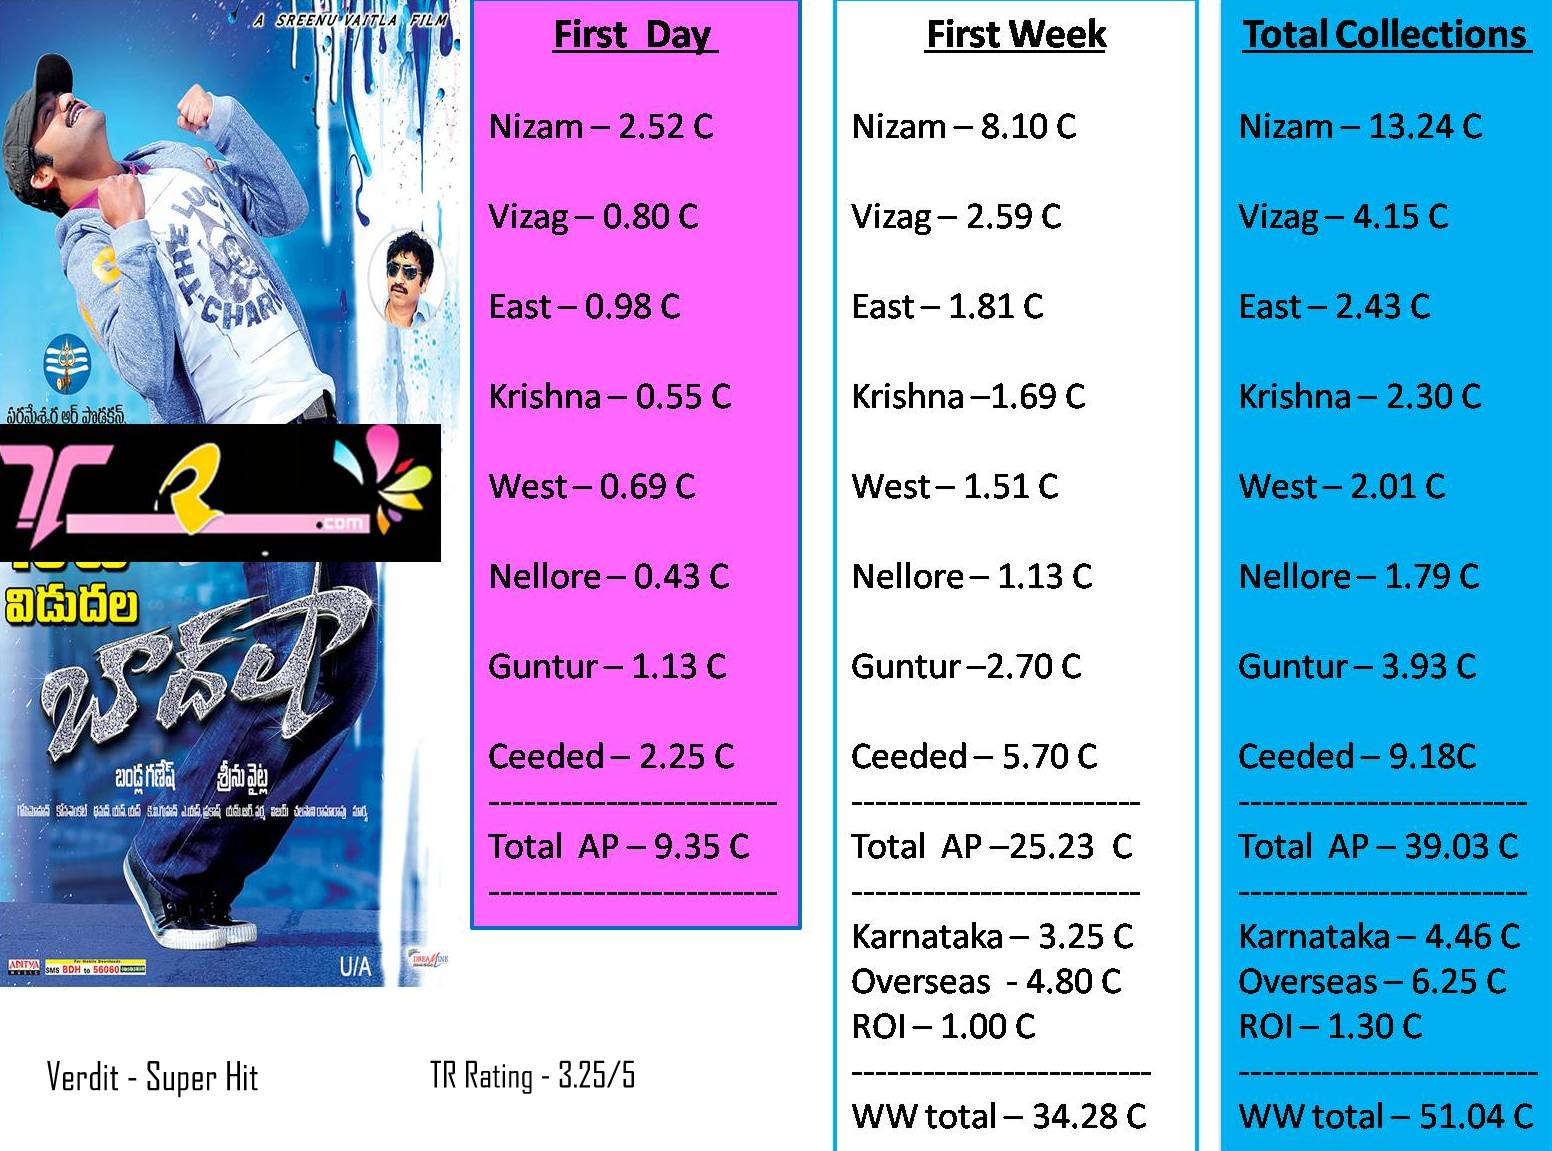 NTR Baadshah Total Collections